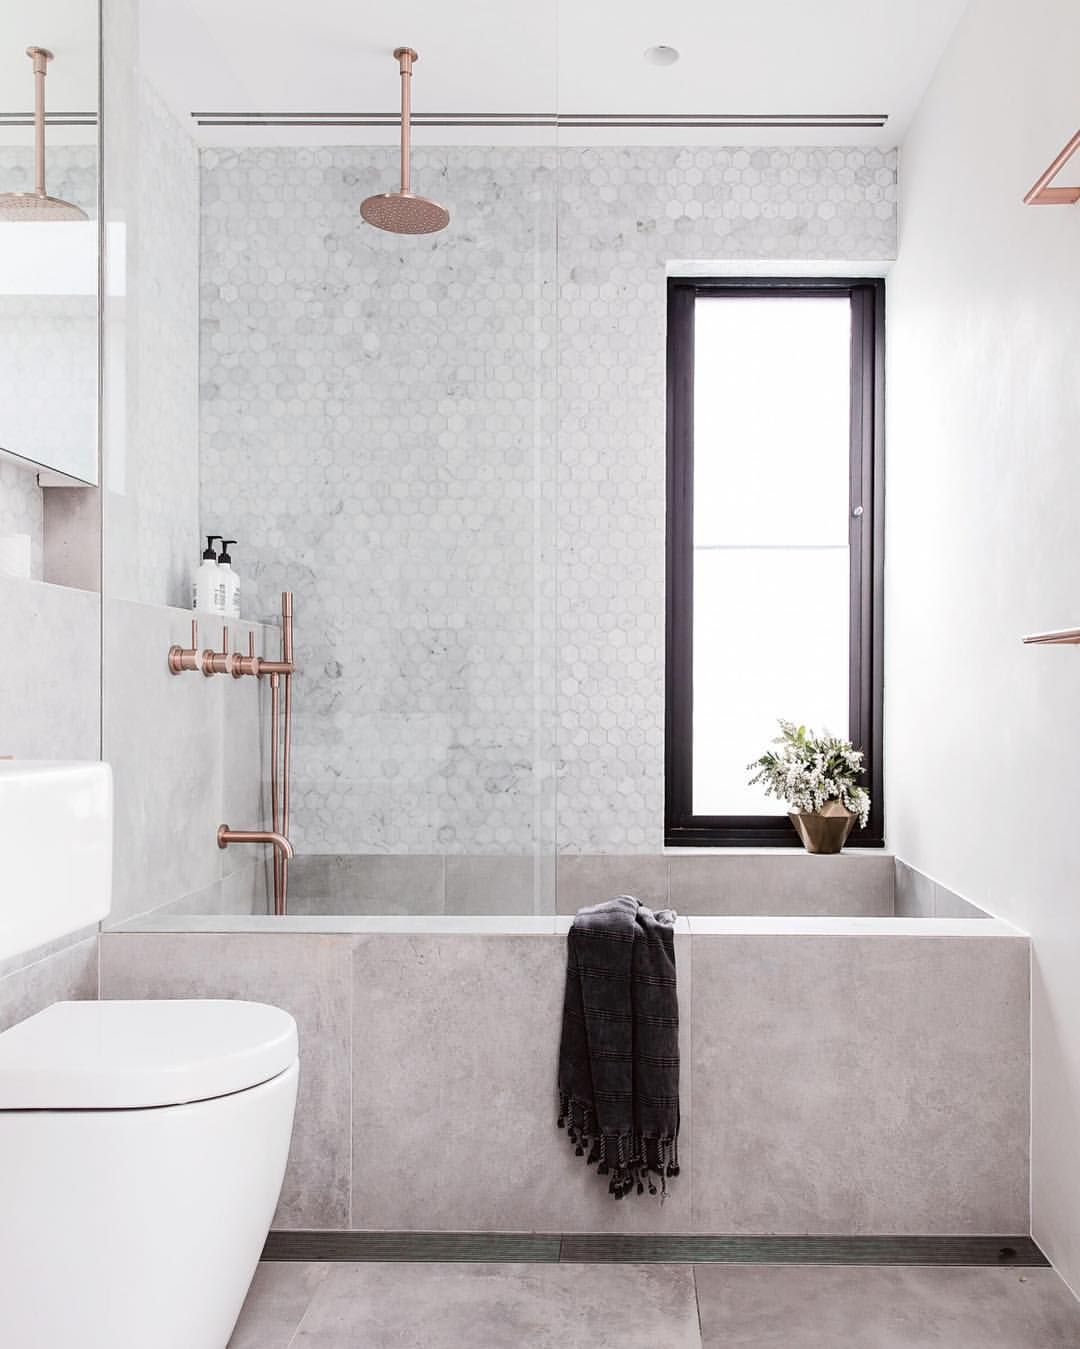 Pin by Melissa Ye on Dream home | Pinterest | Interiors, House and Bath